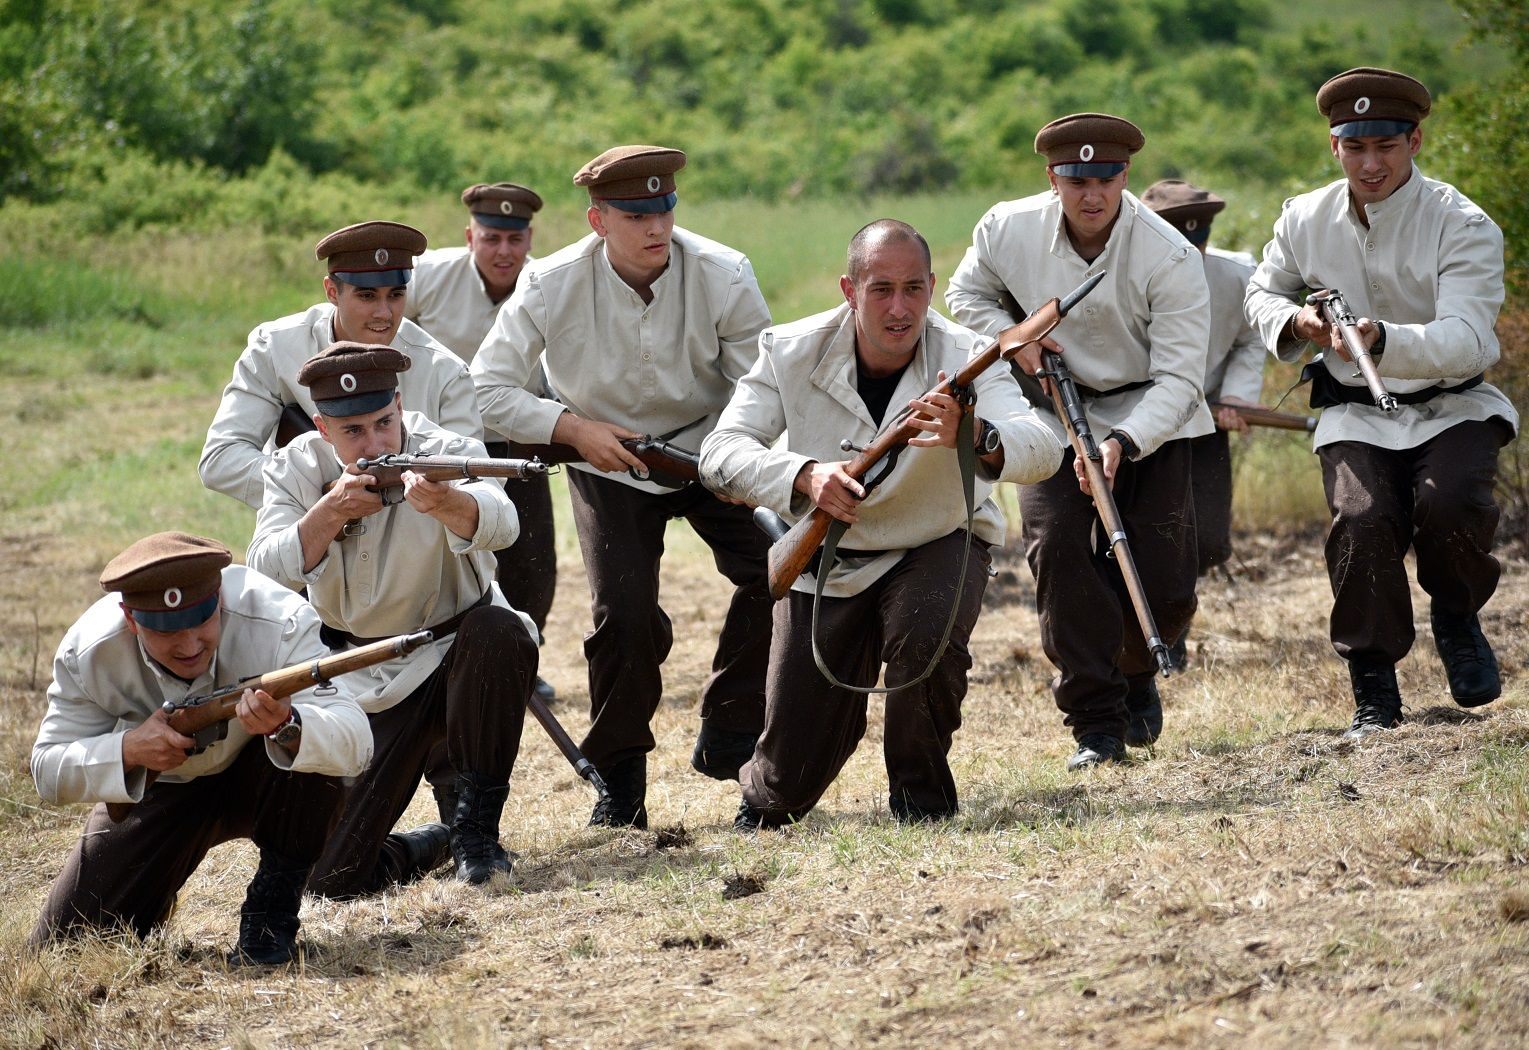 Soldiers from the First World War Filmed for a Short Film